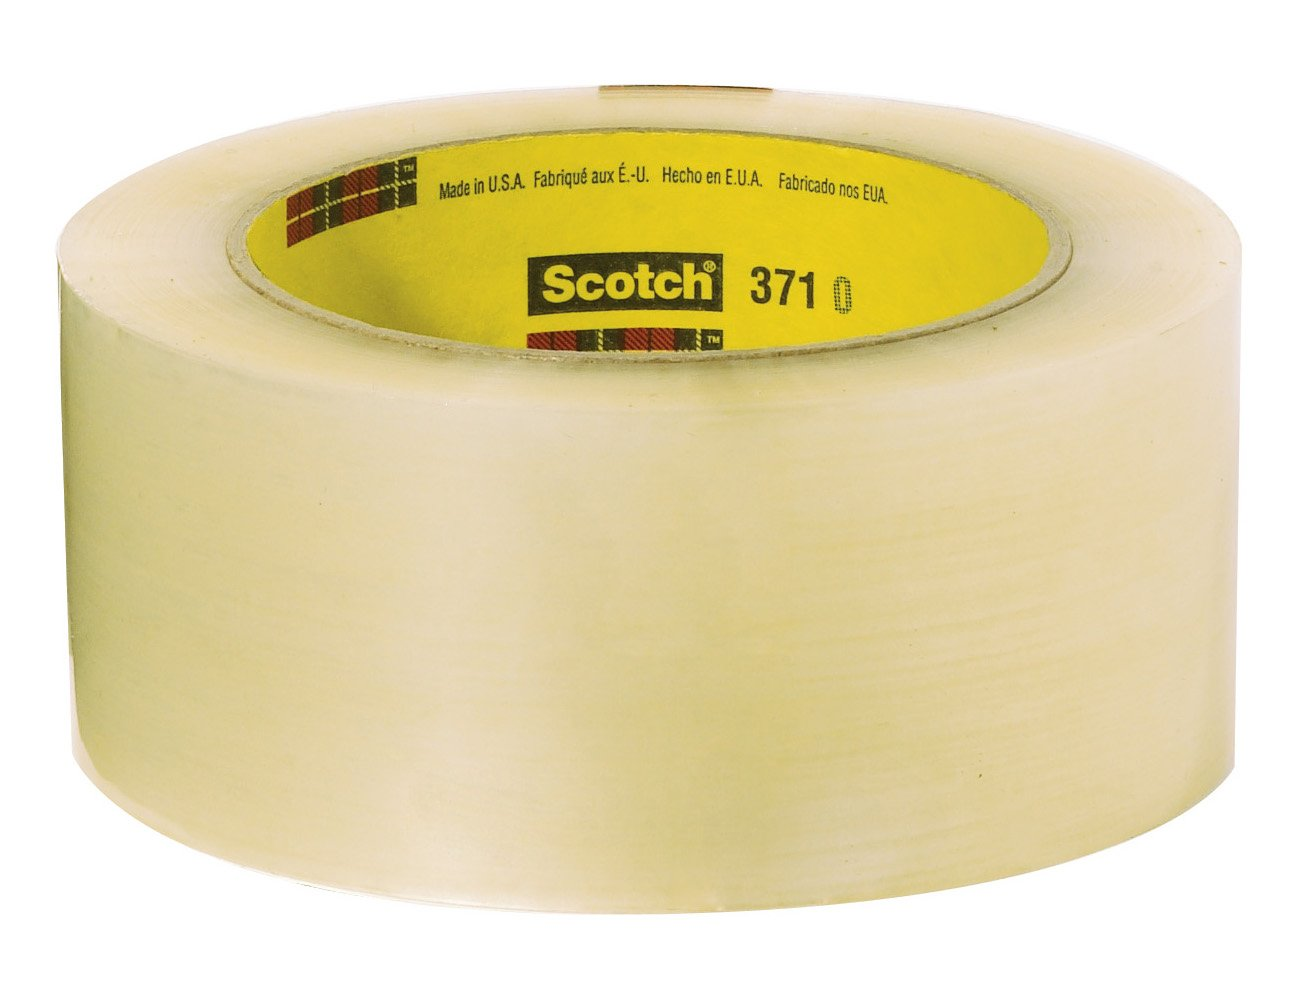 Amazon.com: Scotch Box Sealing Tape 371 Clear, 72 mm x 50 m, Performance, Conveniently Packaged (Pack of 6): Industrial & Scientific